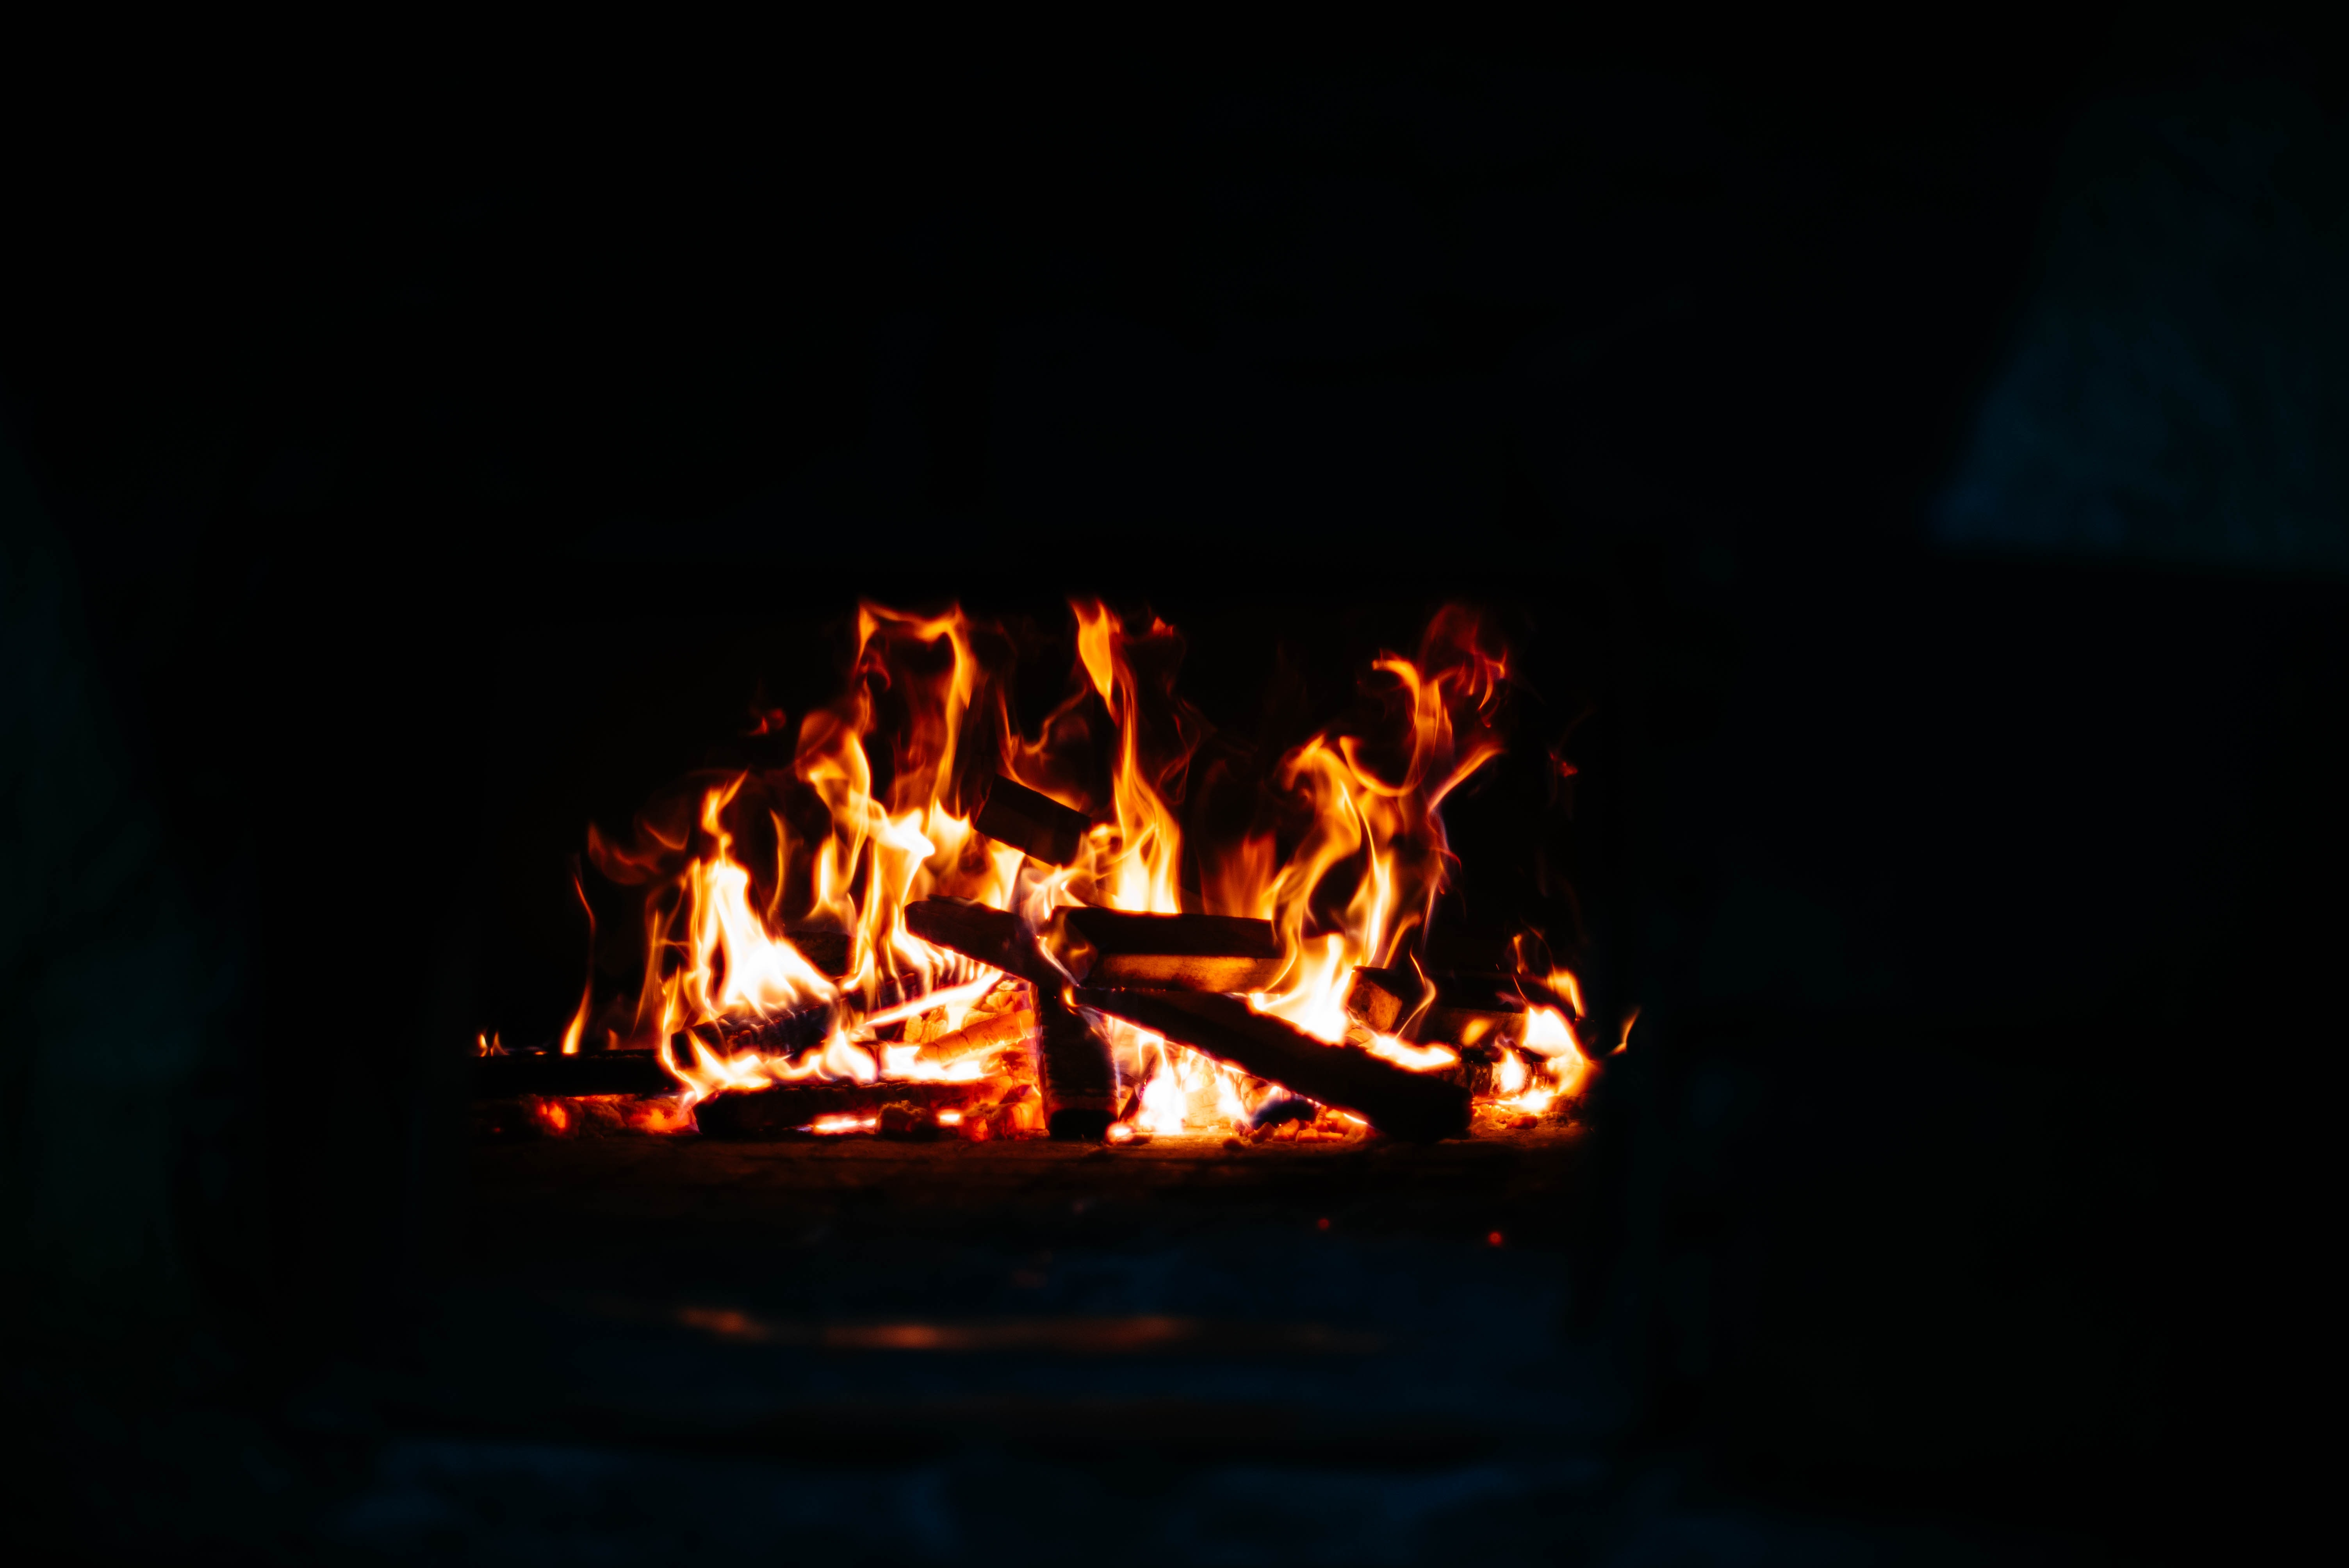 focus photo of fire pit